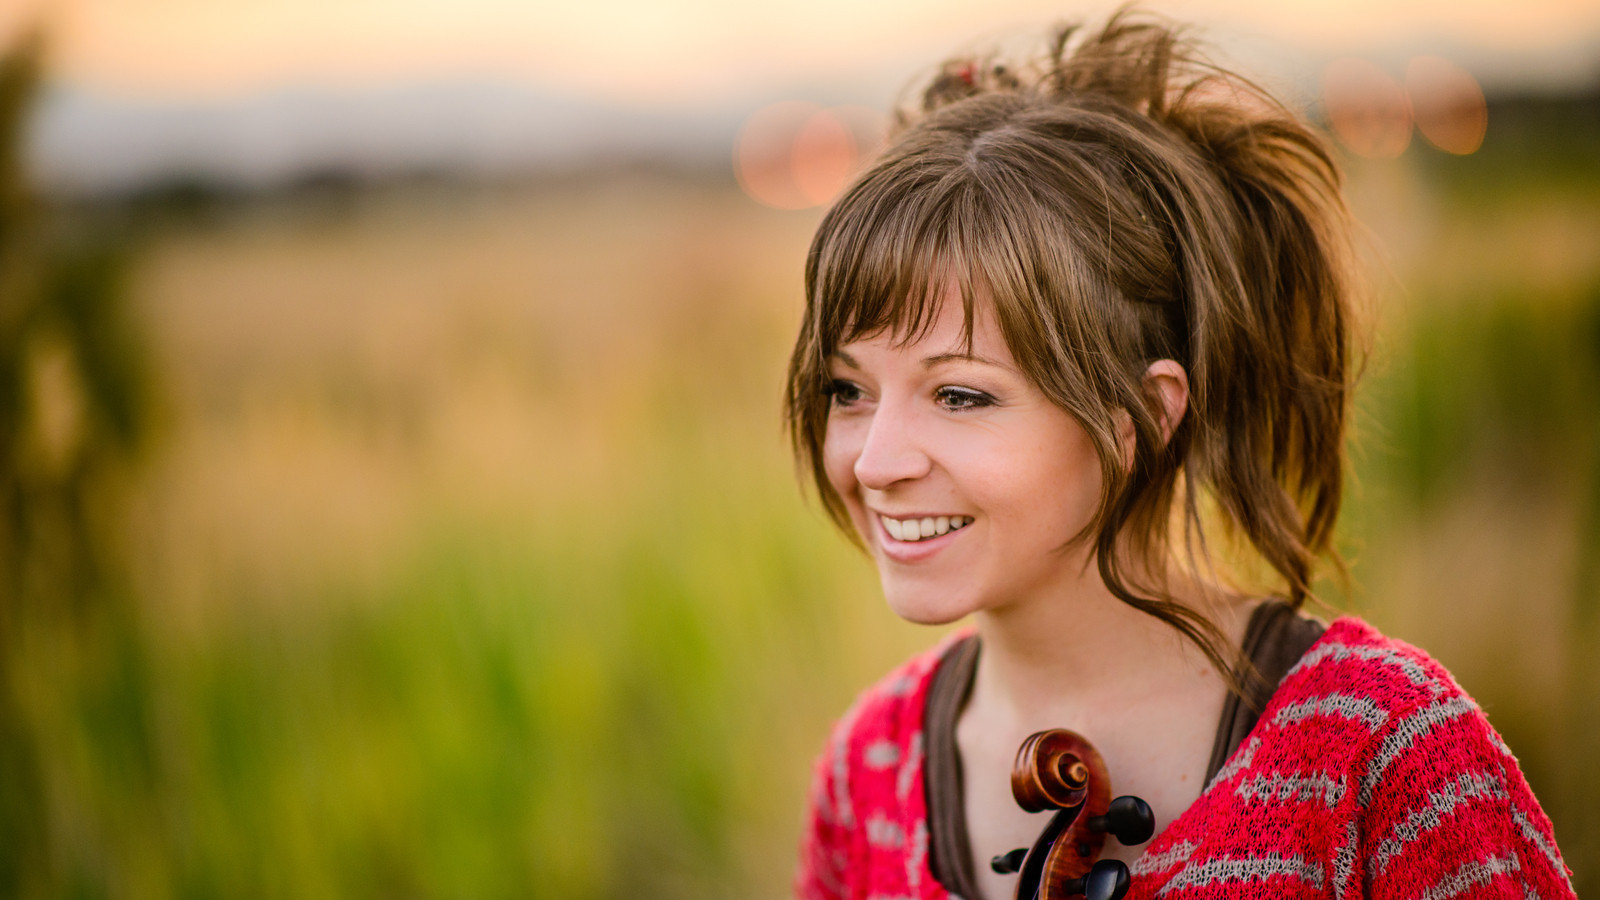 Cute Lindsey Stirling